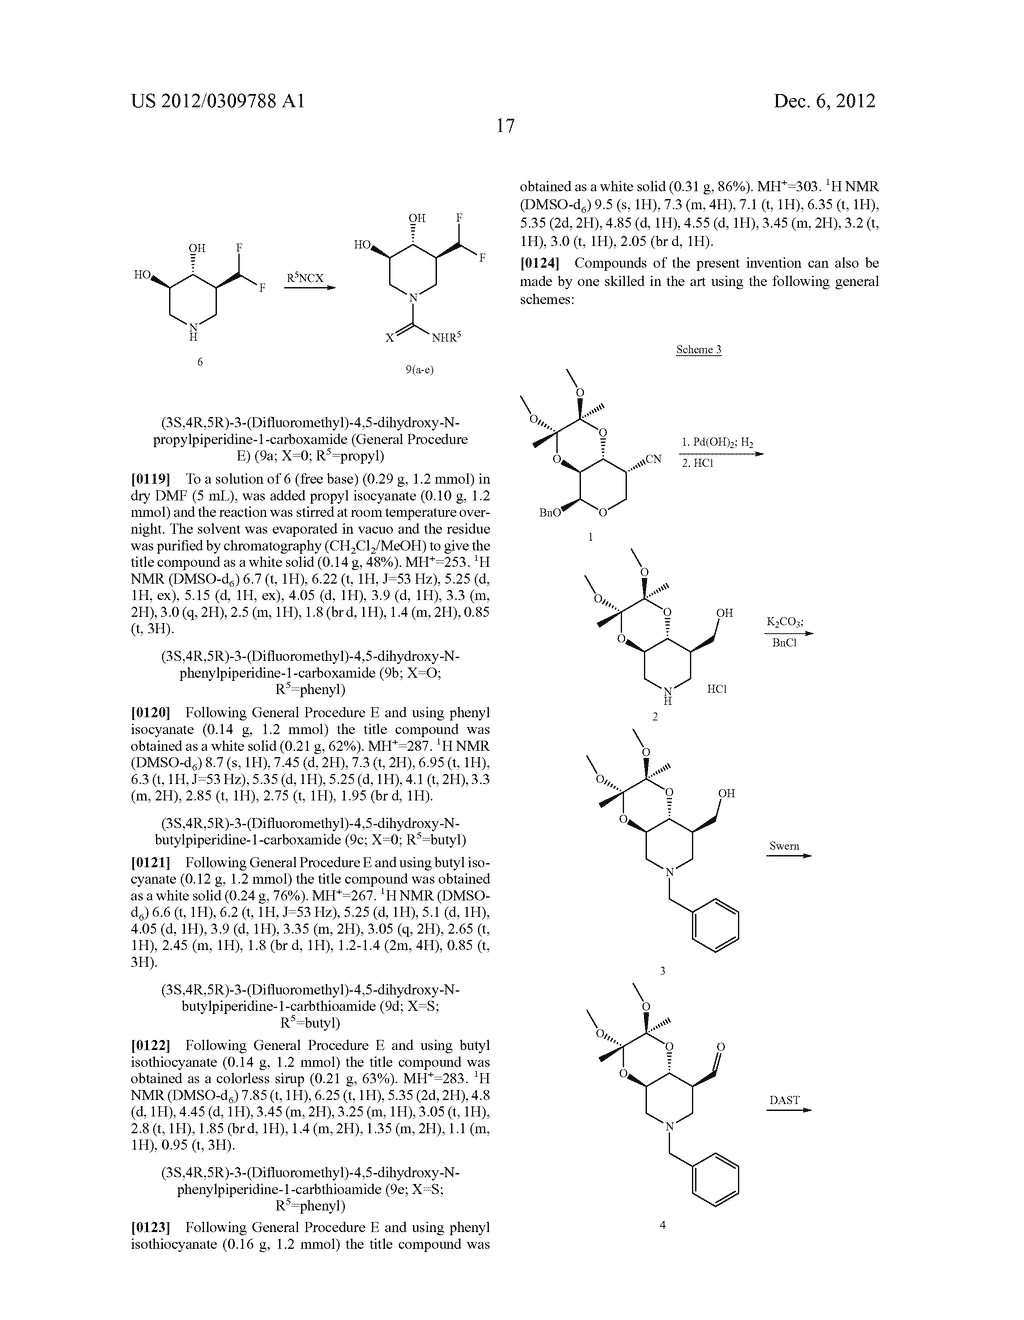 Method for Treating Alzheimer's Disease Using Pharmacological Chaperones     To Increase The Activity of Gangliosidases - diagram, schematic, and image 26